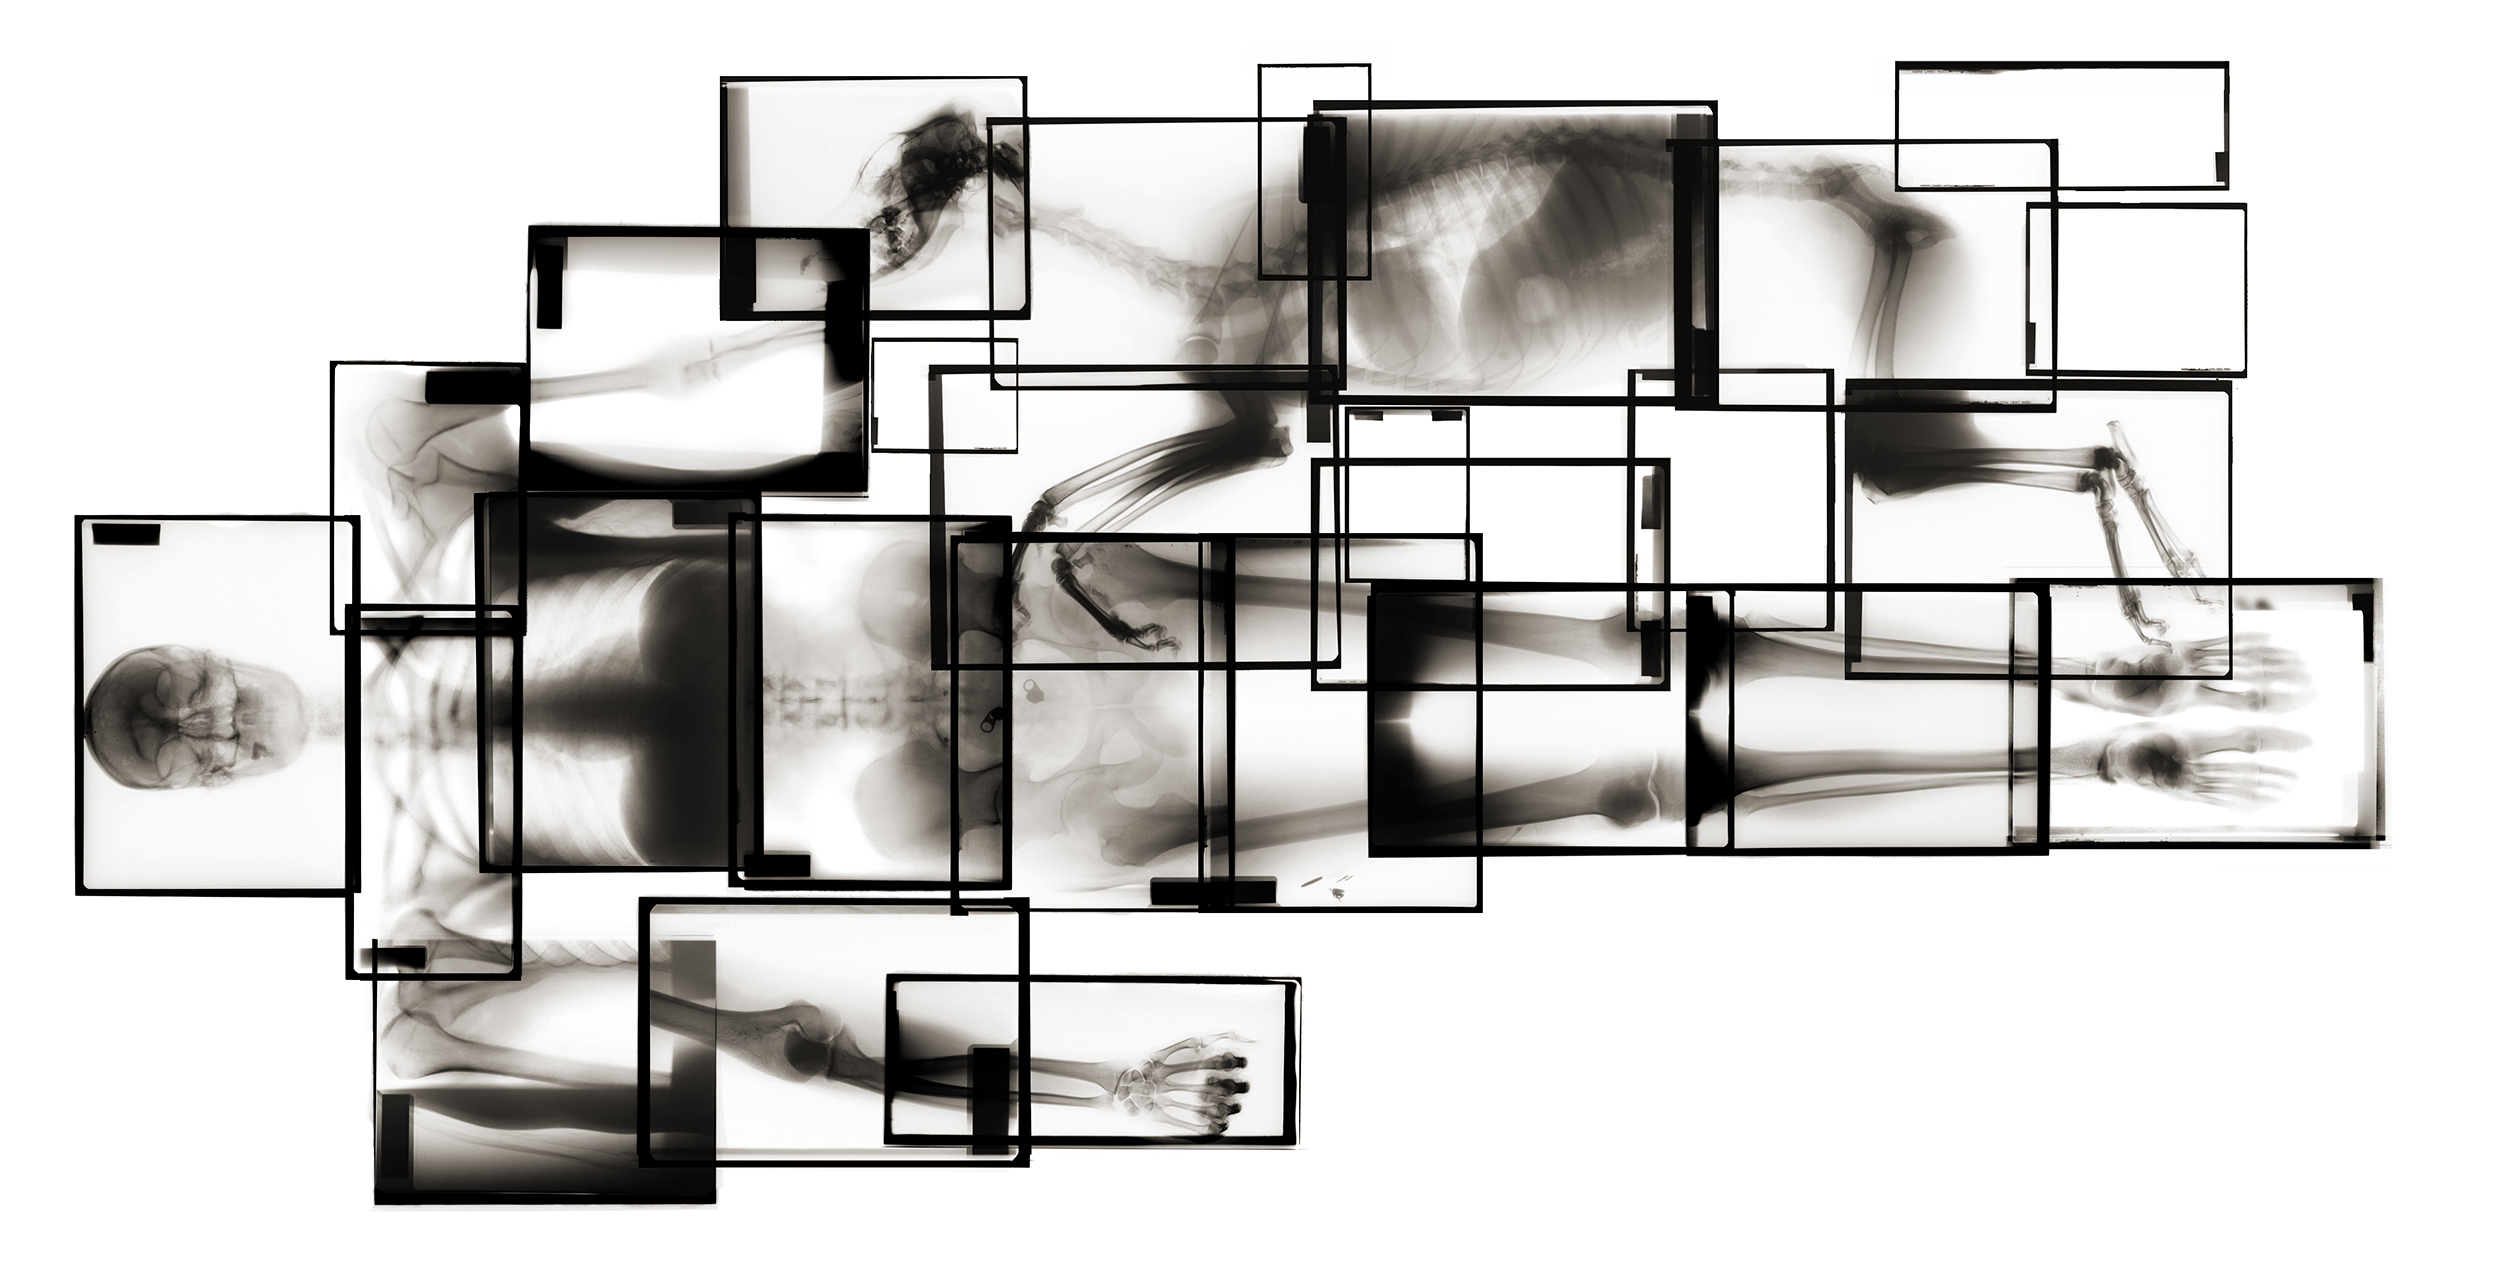 Extended Self Portrait / X-ray with best friend, Taa-Taa, the Rhodesian Ridgeback :  X-ray executed at Animal Clinic facility in Kristiansand, Norway in 2008. Archival Pigment Print on iBond plate. 200 x 100 cm / 78 x 33 in 2008